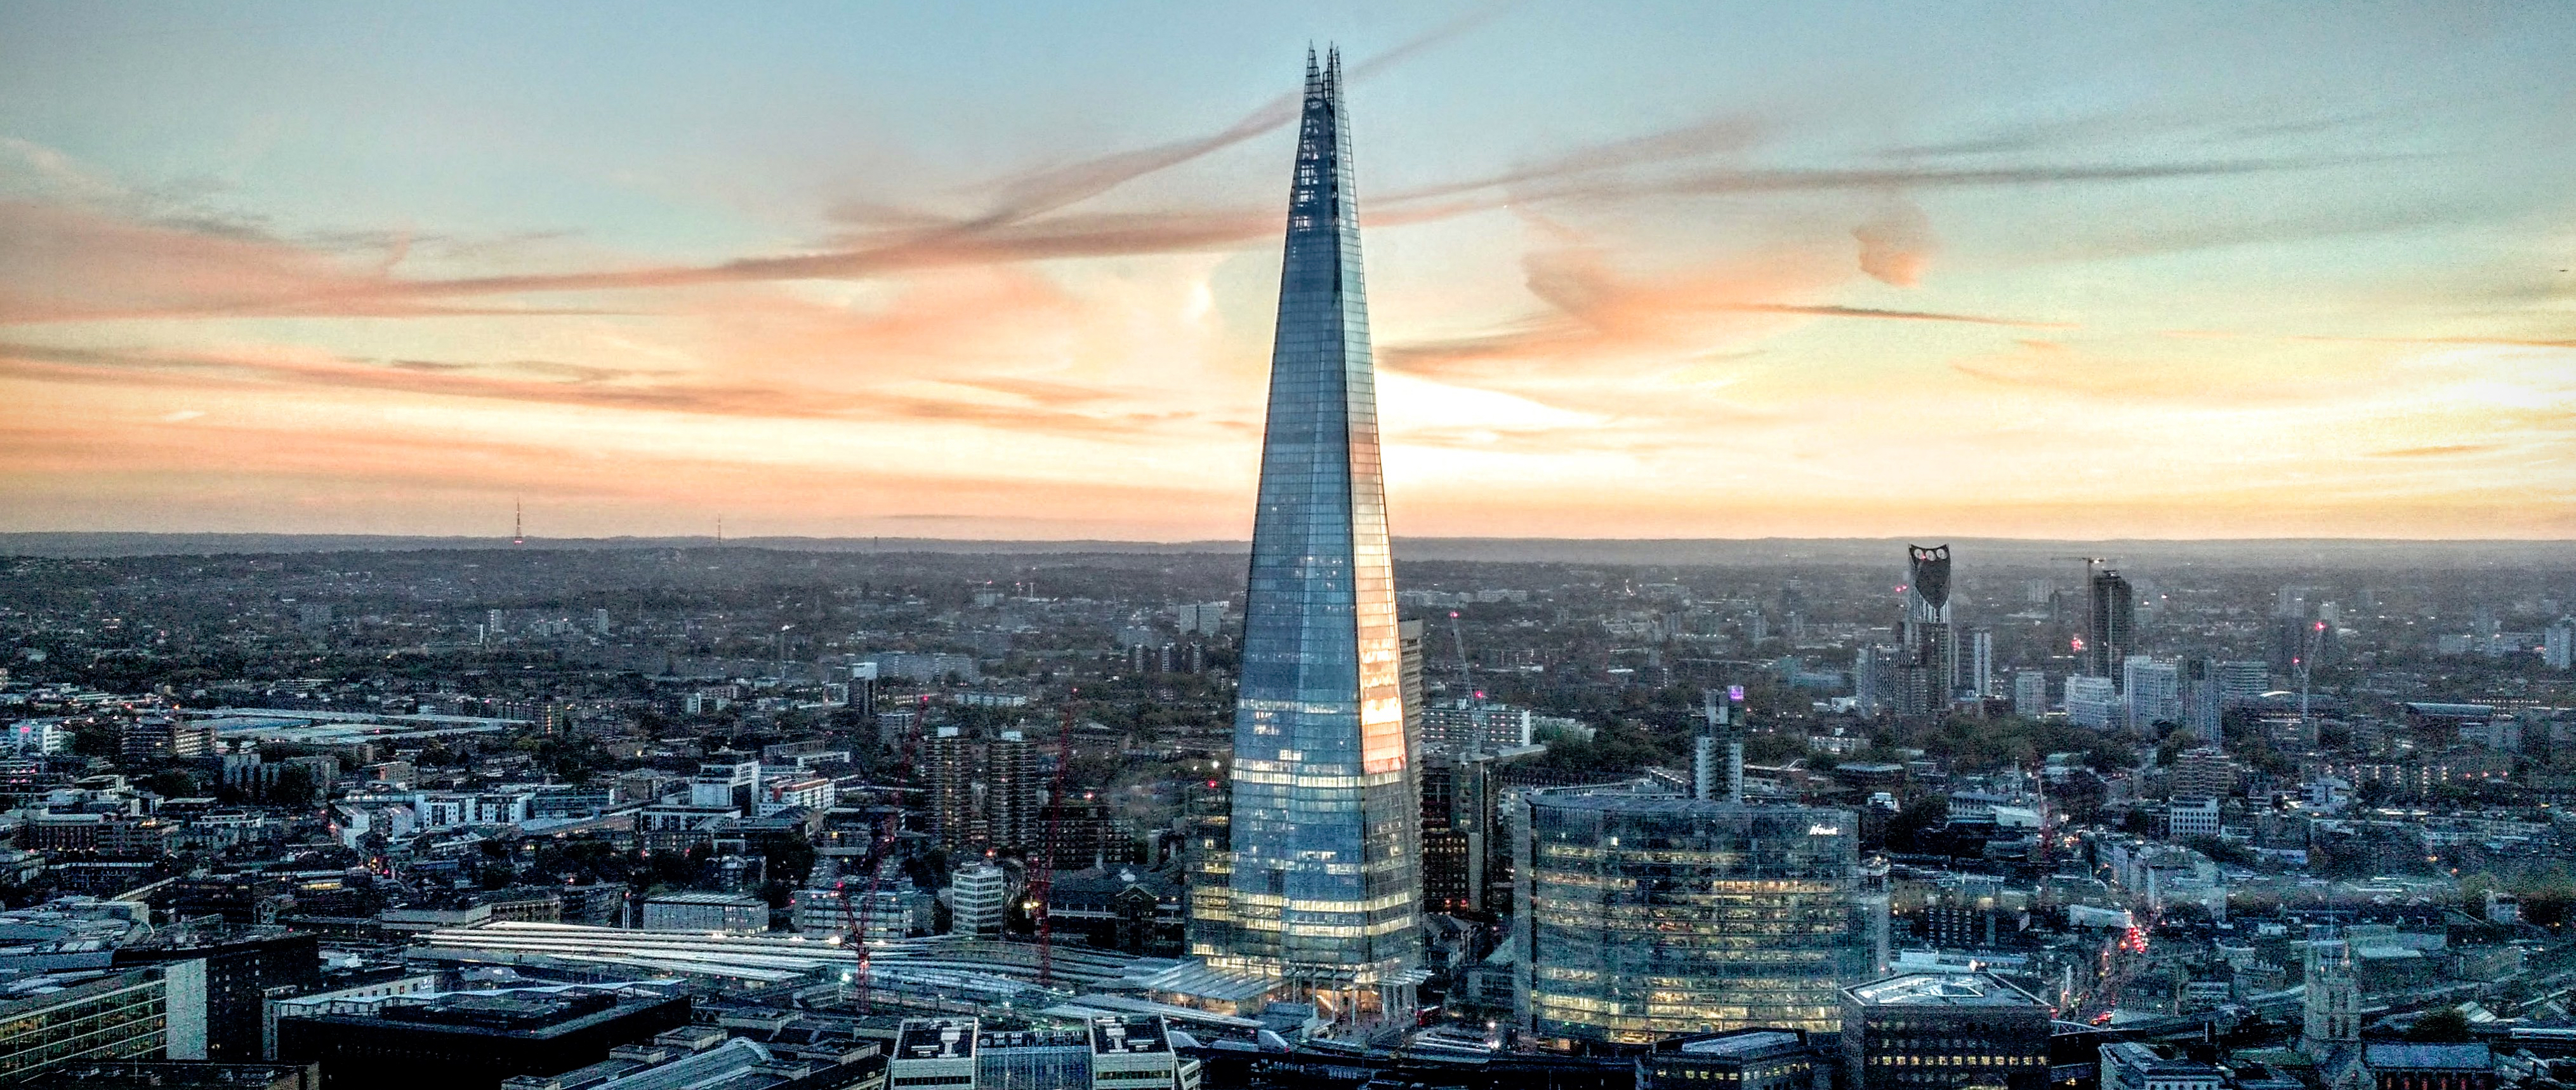 The city of London is at the heart of the UK's economy